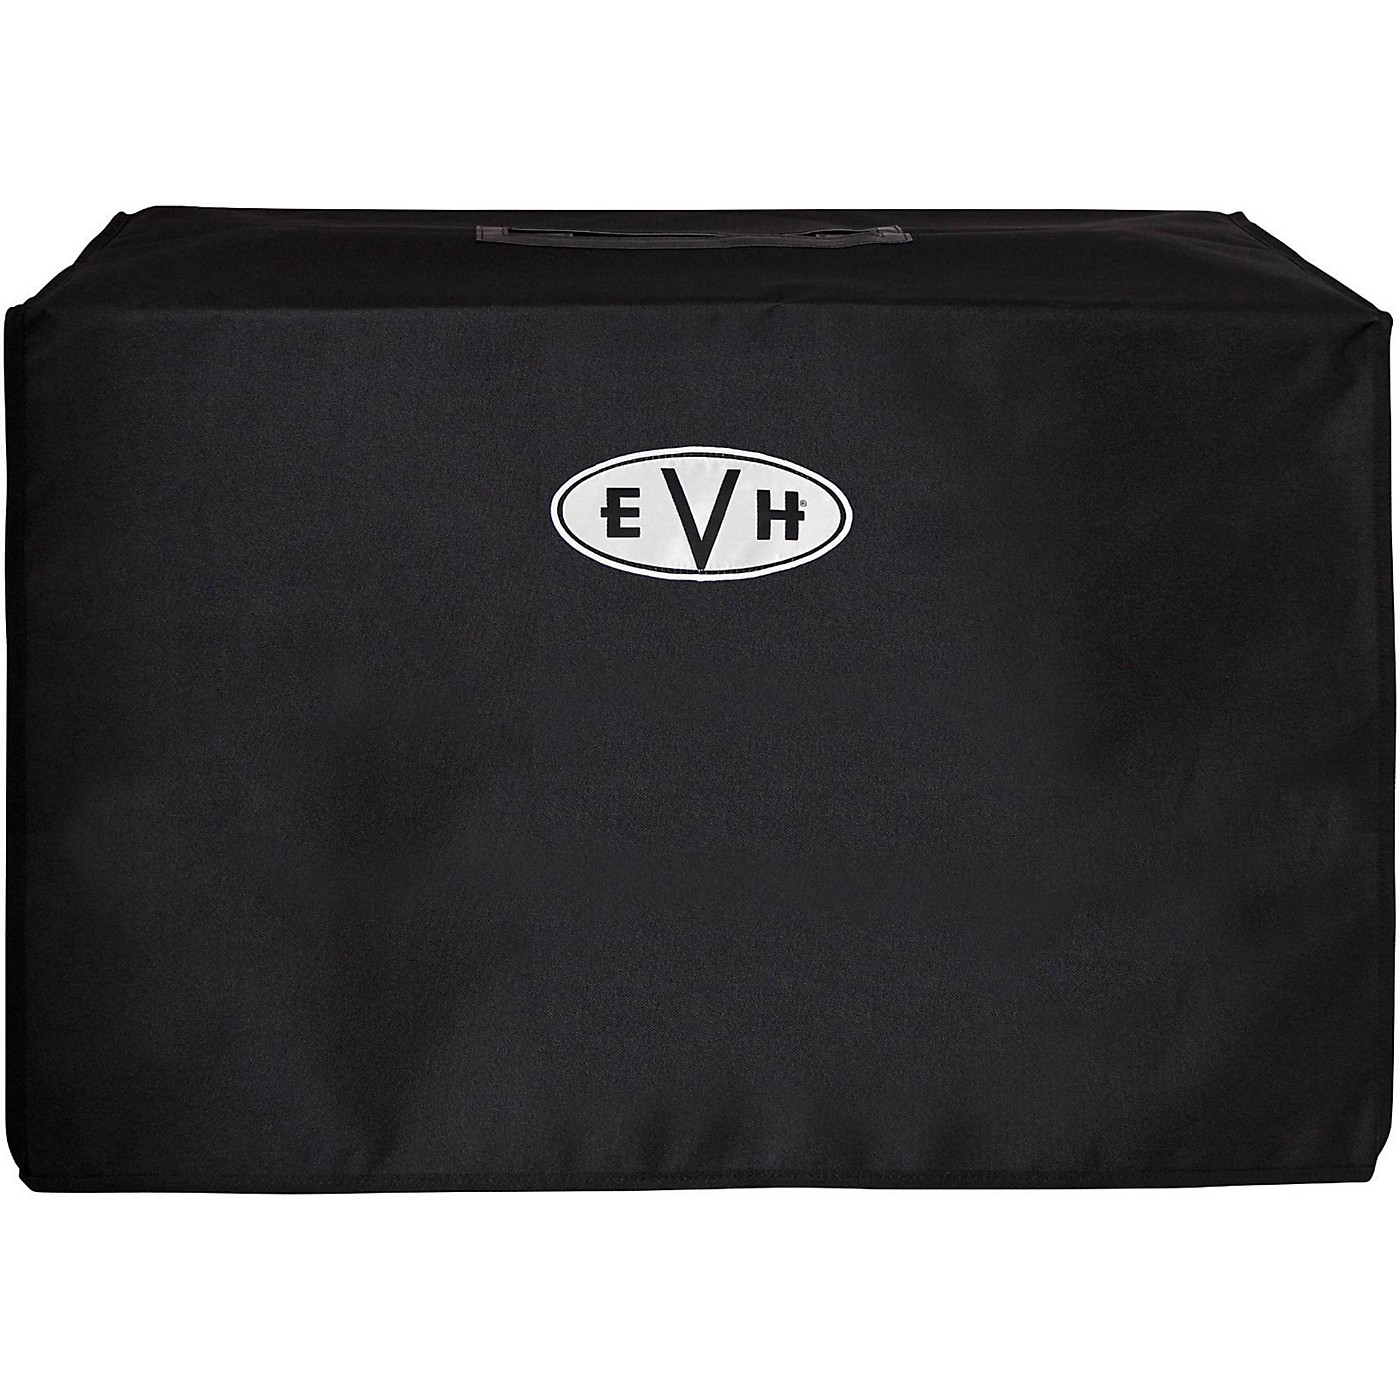 EVH Cover for 1x12 Guitar Combo Amp thumbnail